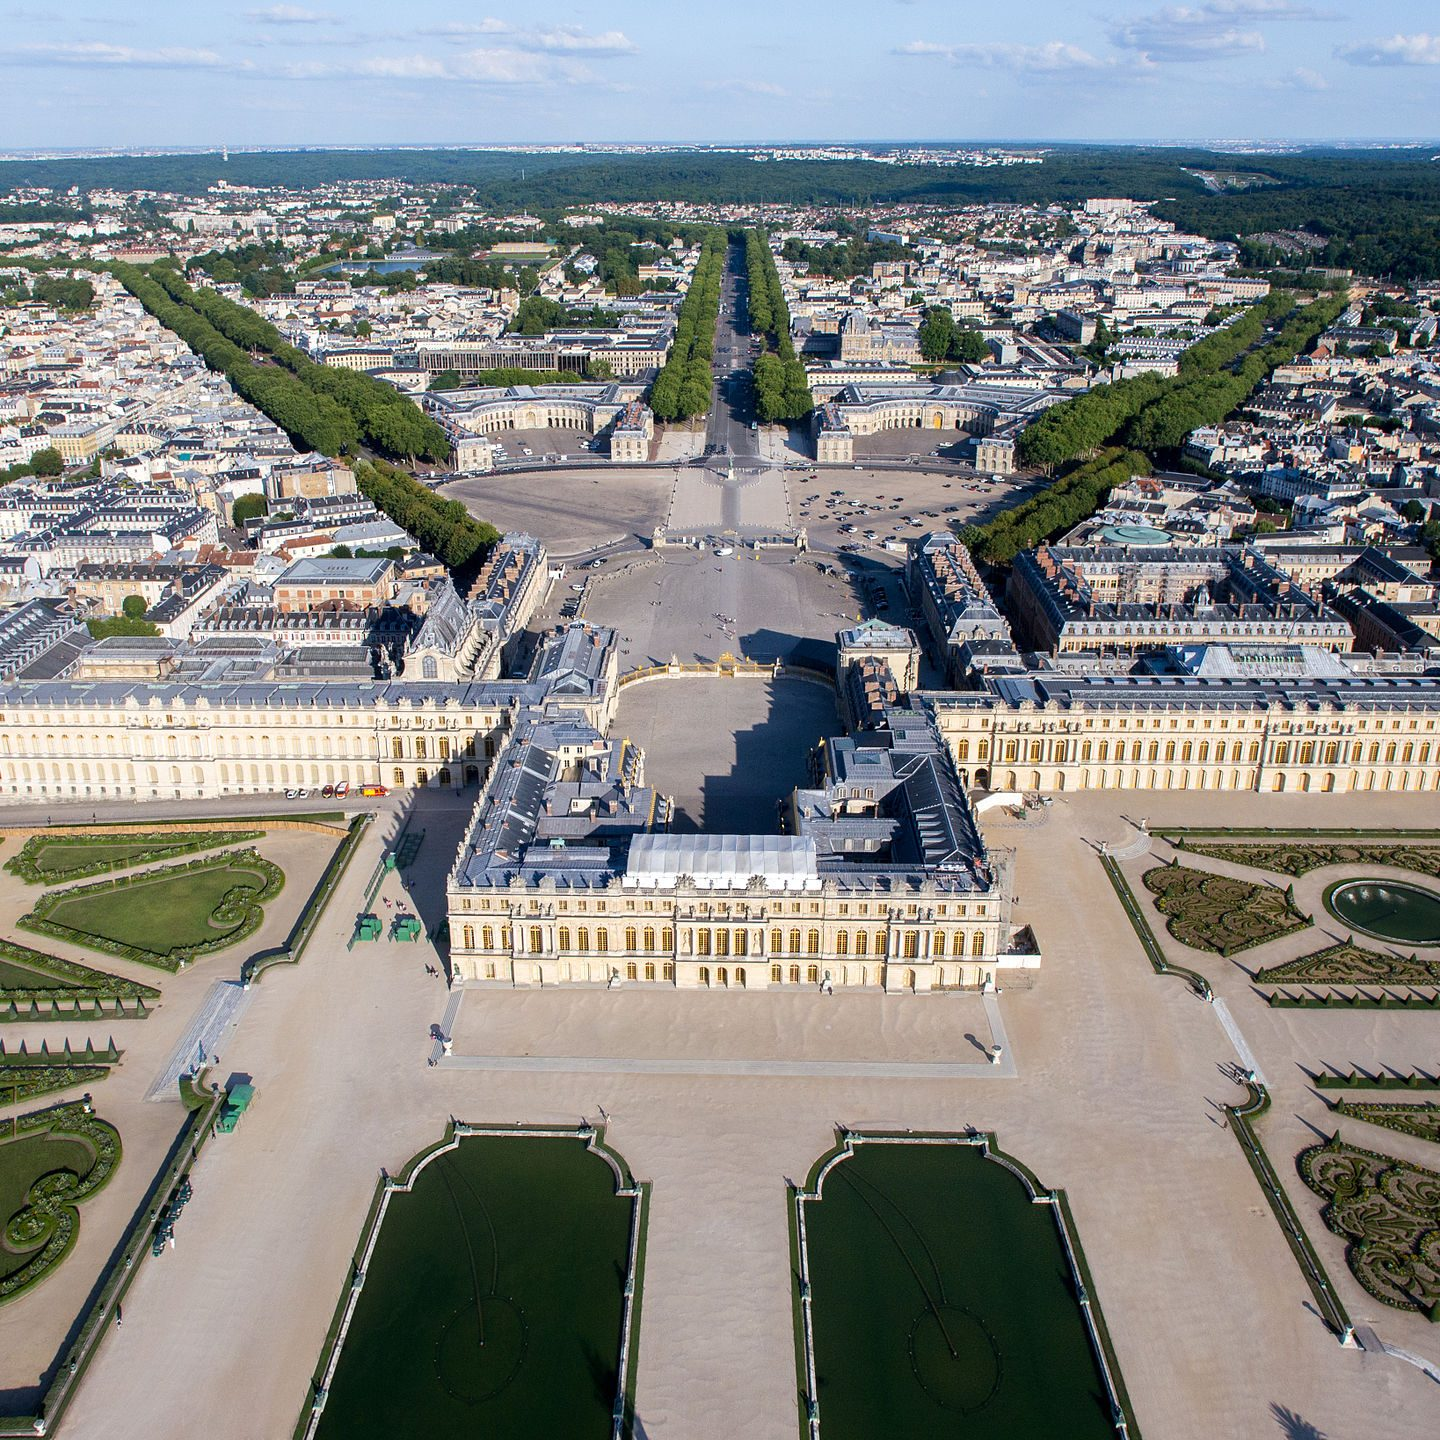 Image from https://en.wikipedia.org/wiki/Palace_of_Versailles#/media/File:Vue_a%C3%A9rienne_du_domaine_de_Versailles_par_ToucanWings_-_Creative_Commons_By_Sa_3.0_-_073.jpg